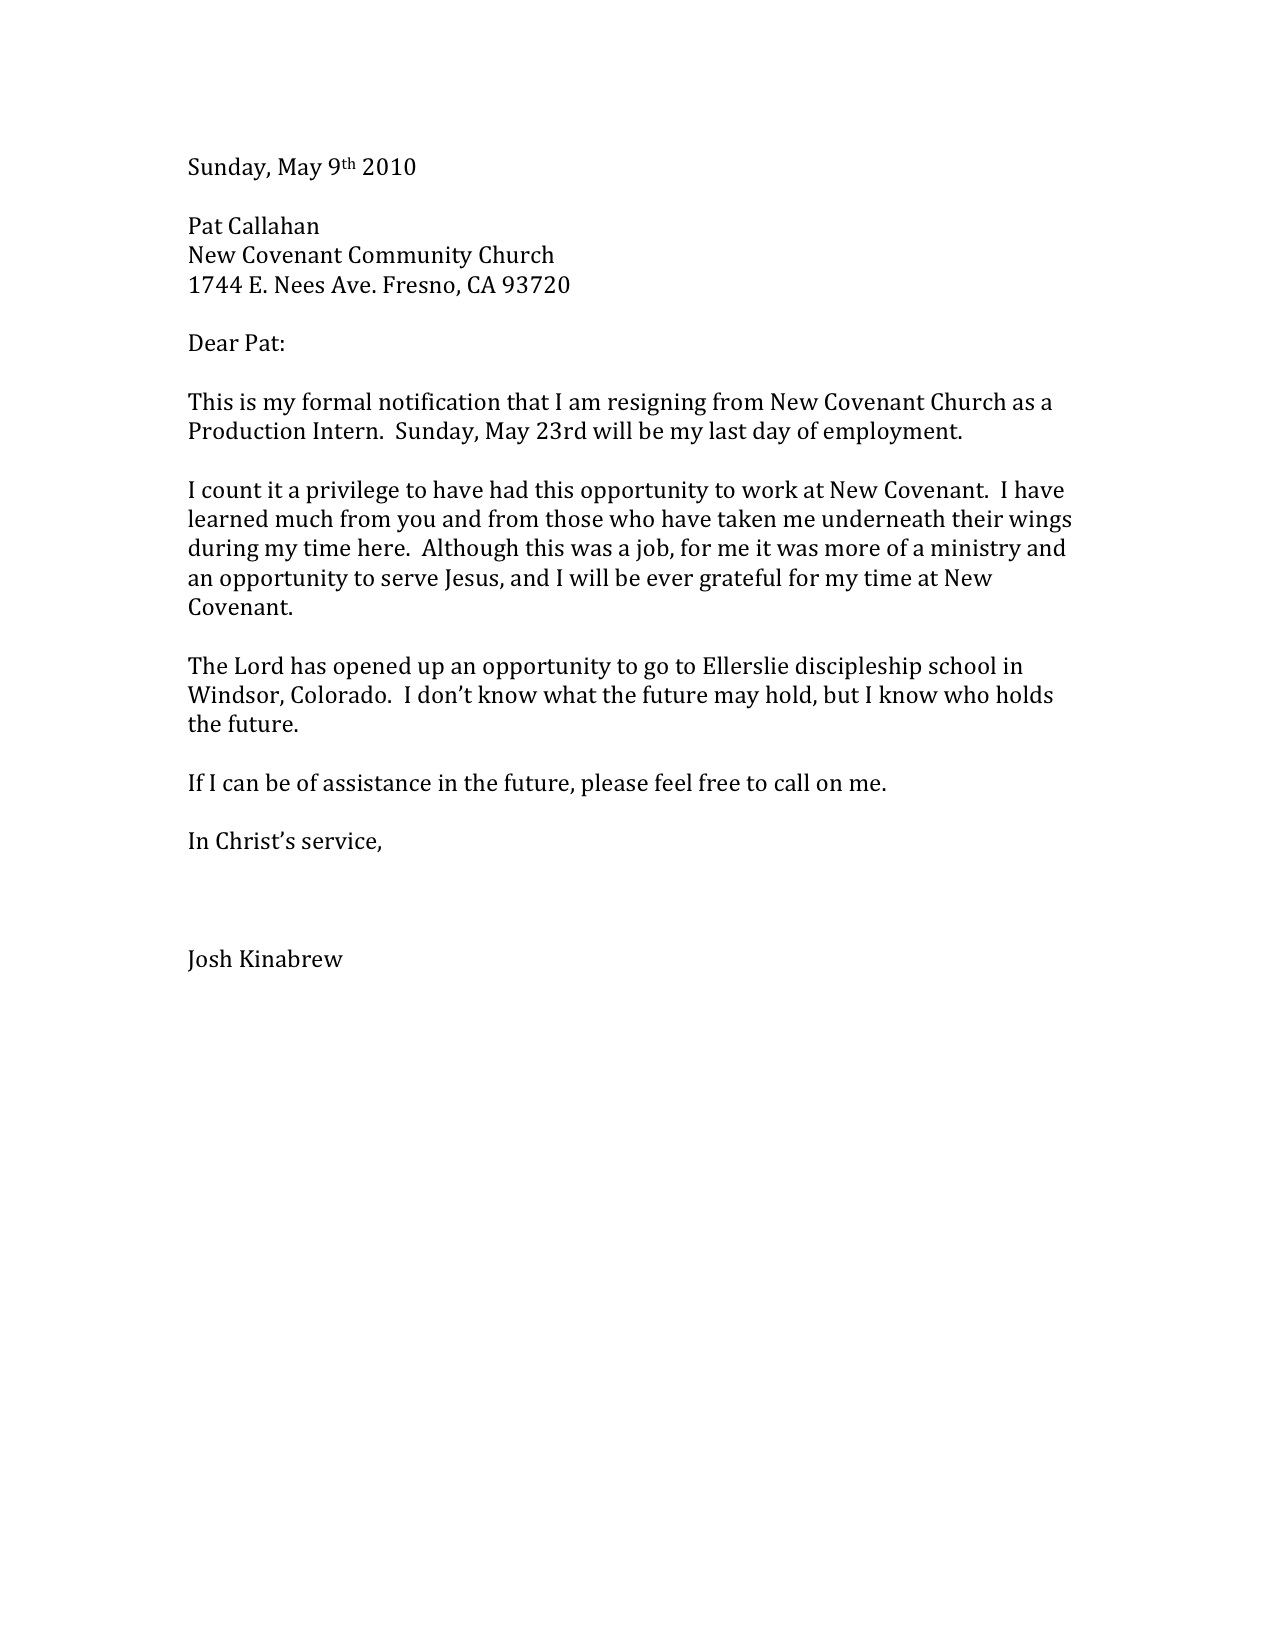 Professional Resignation Letter and Free Letter Of Resignation